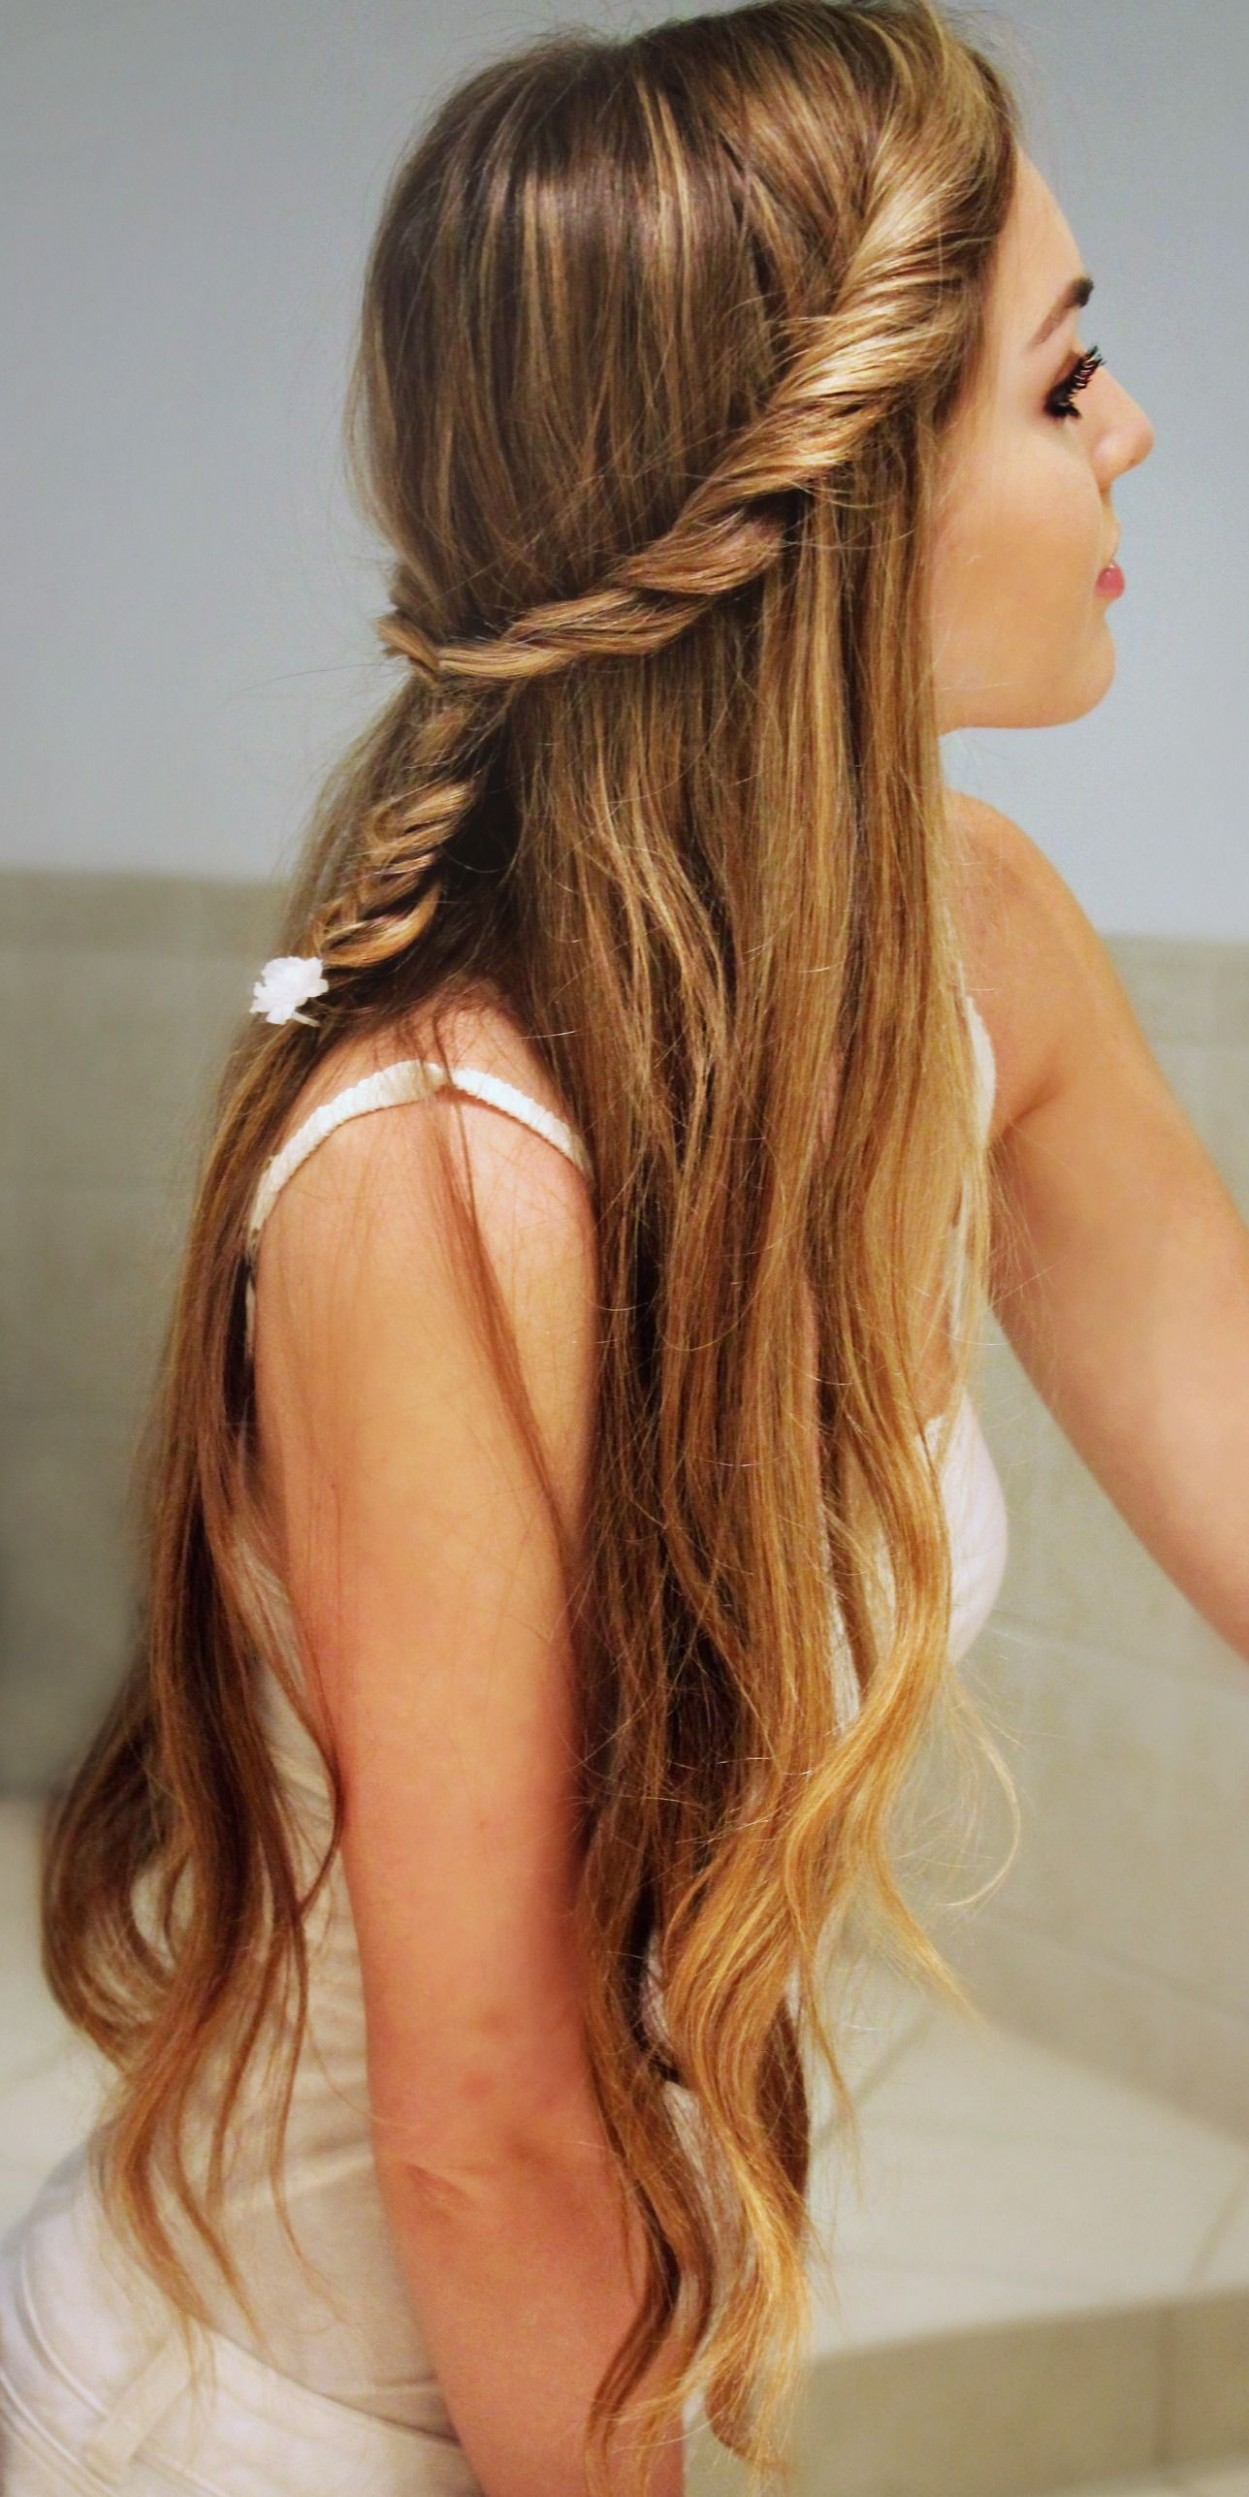 9 Cute Back To School Hairstyles For Girls Teenage Hairstyles Cute Hairstyles For Girls With Long Hair